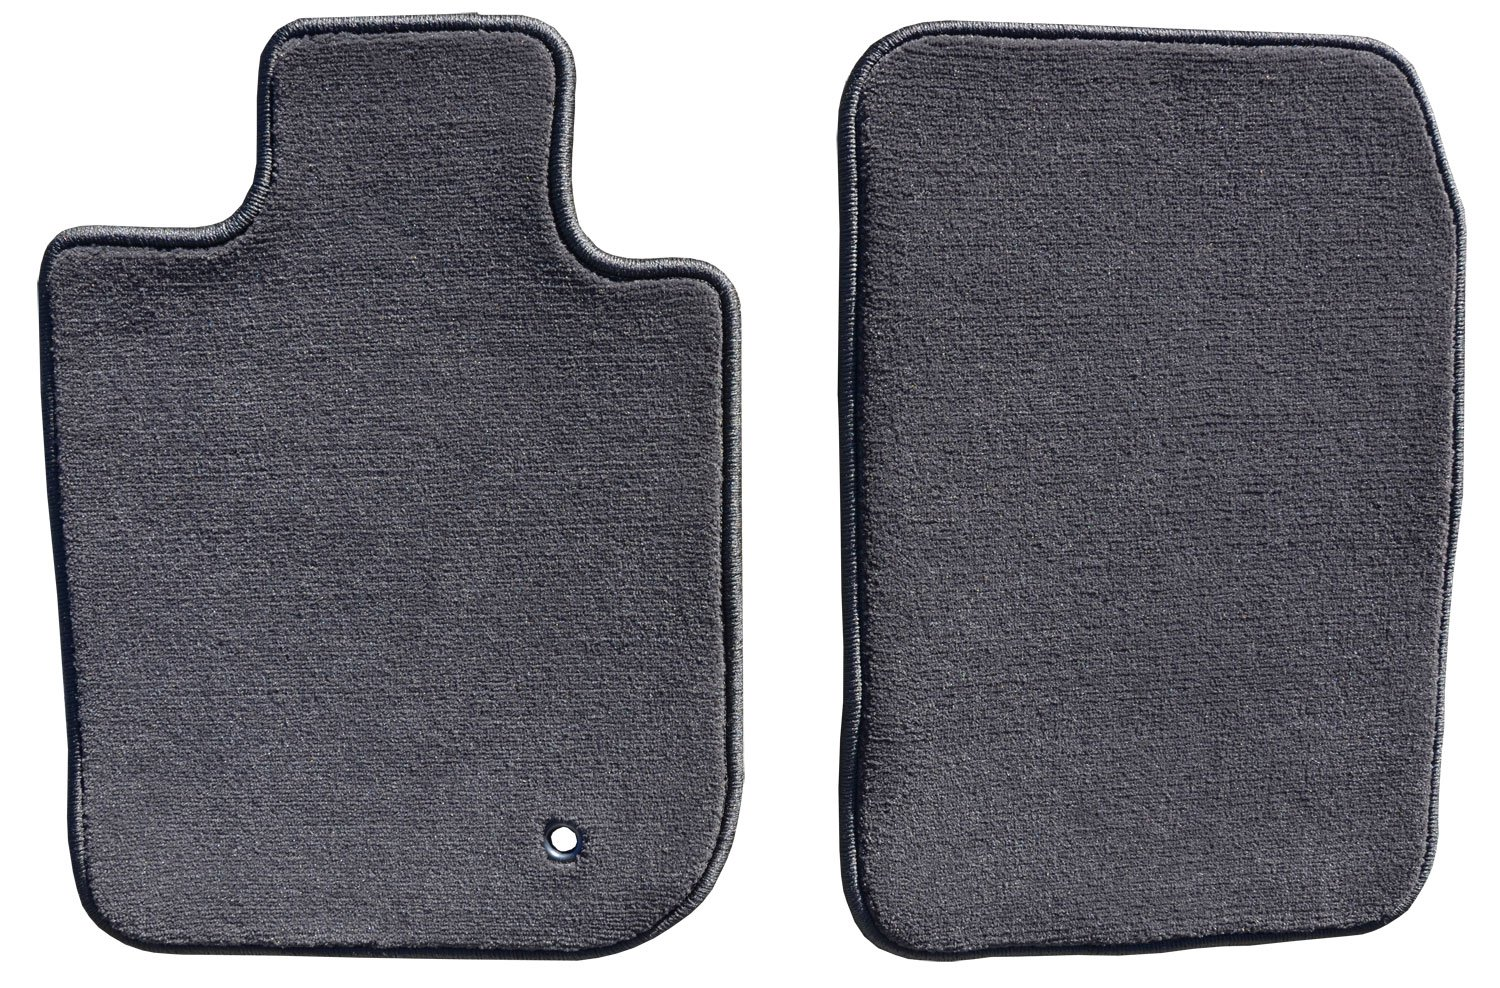 Polypropylene Fiber Charcoal GG Bailey D2422A-F1A-CC-CHAR Front Set Custom Fit Car Mat for Select Chrysler Town /& Country Models